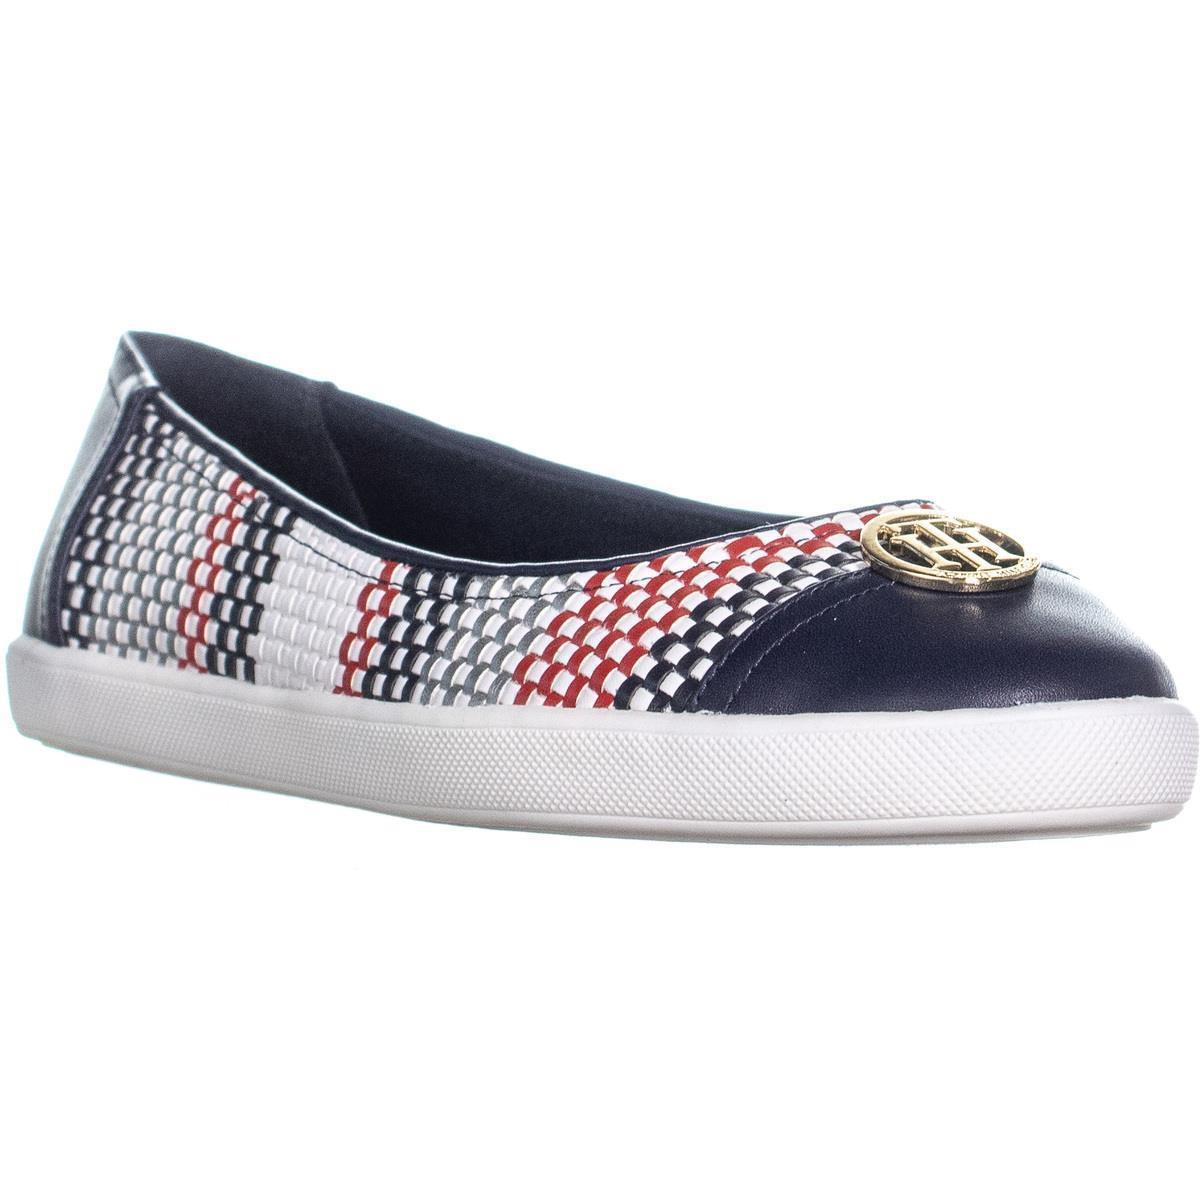 e1369a22c3fc9 Lyst - Tommy Hilfiger Vinnly Slip On Flats in Blue